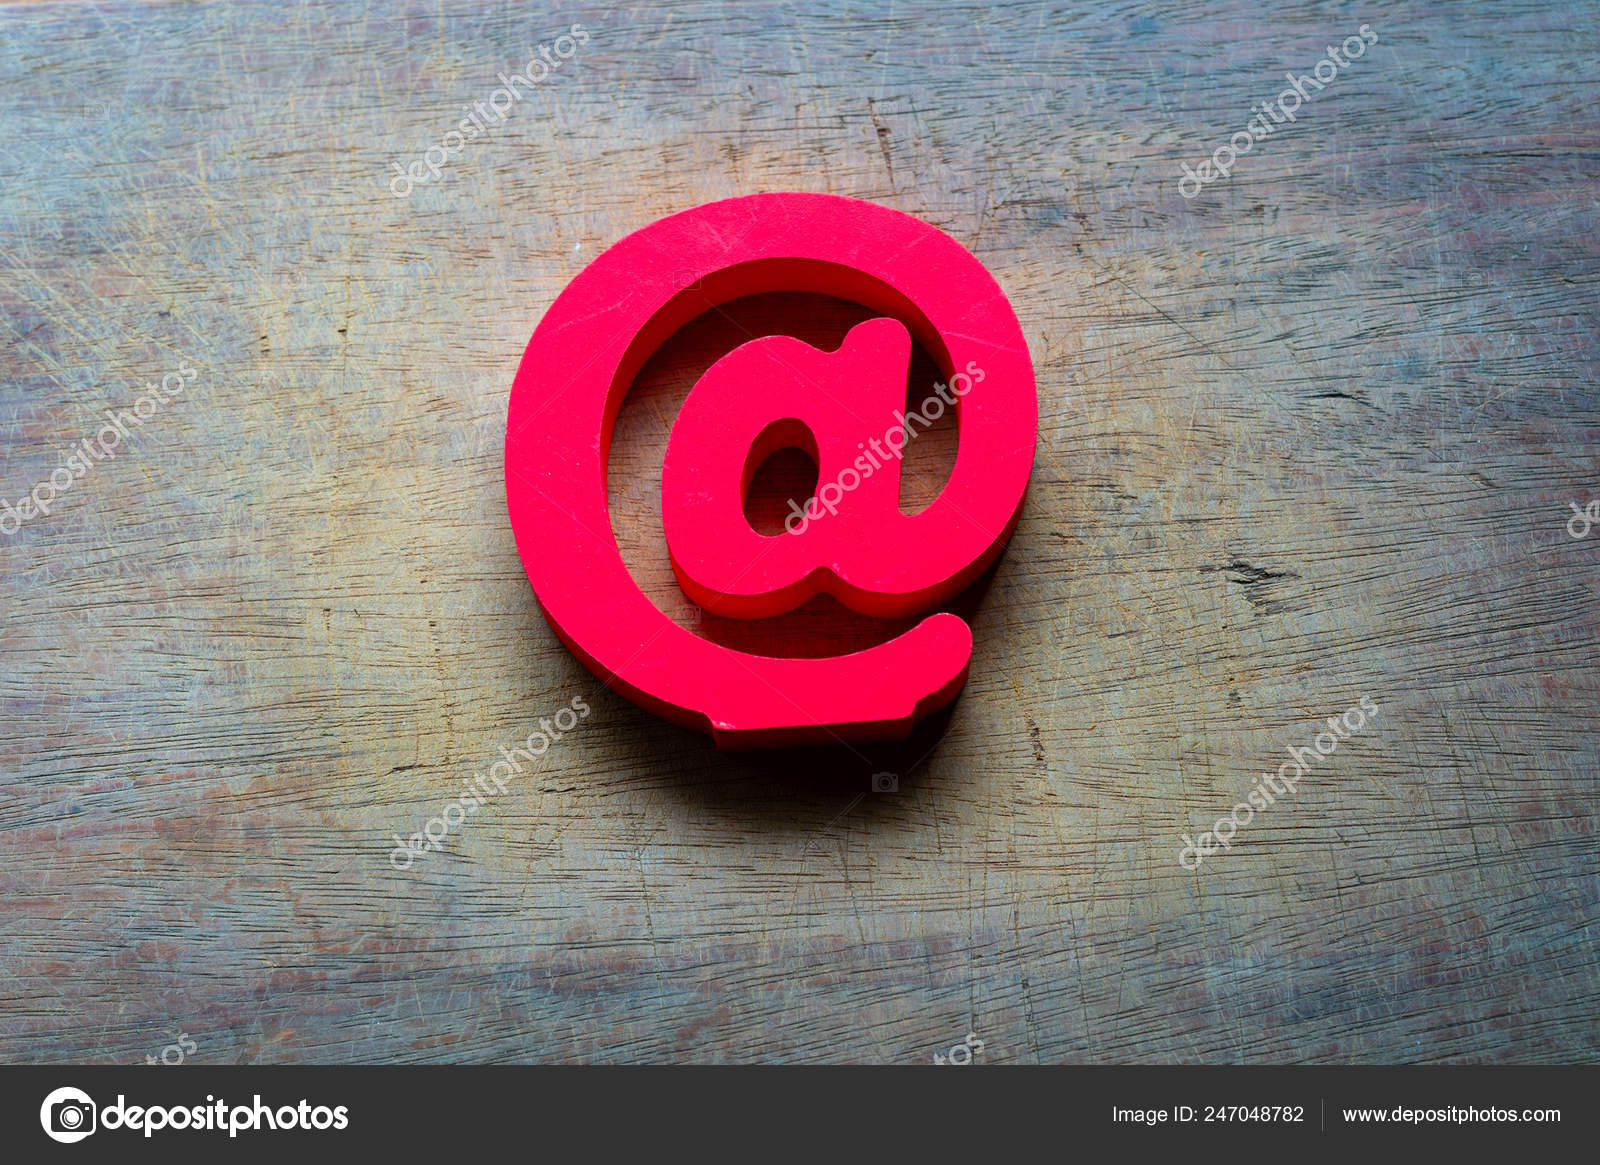 Email Symbol Wooden Background Concept Internet Contact Mail Address Stock Photo C Robbin0919 Gmail Com 247048782